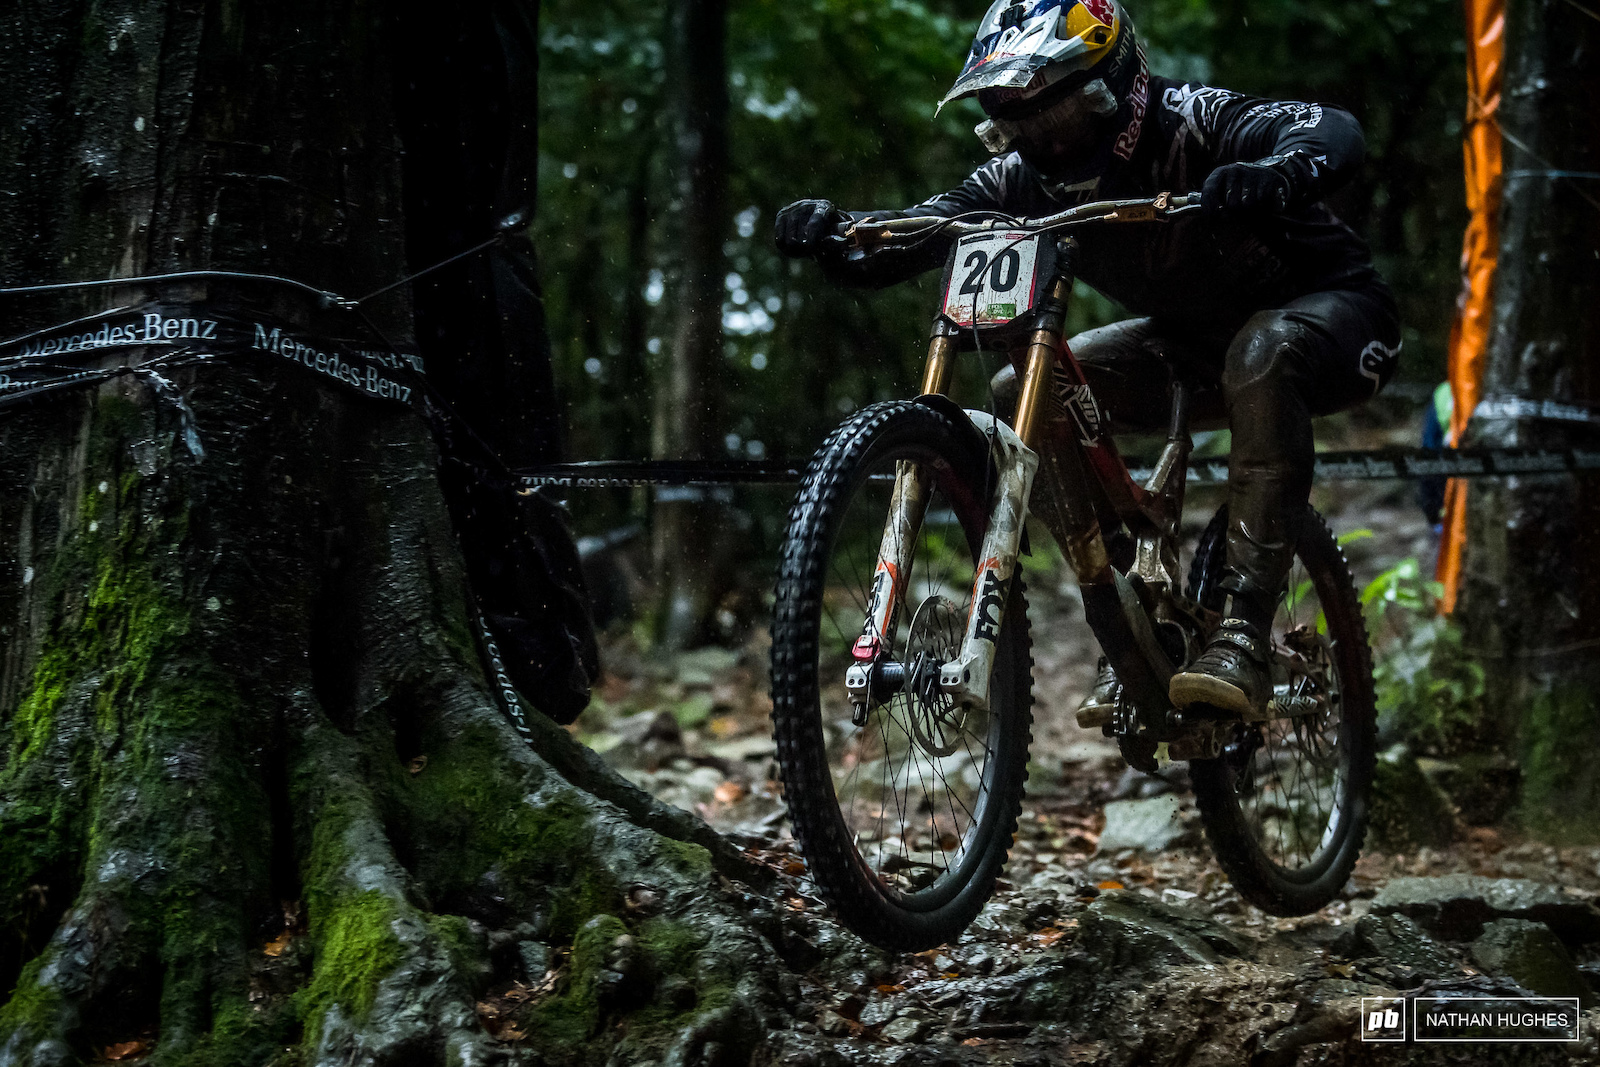 We re still waiting to see Aaron Gwin go back into beast mode and despite the parallels of 2017 Mont Sainte Anne with today he didn t quite flip the switch and rolled into 19th.